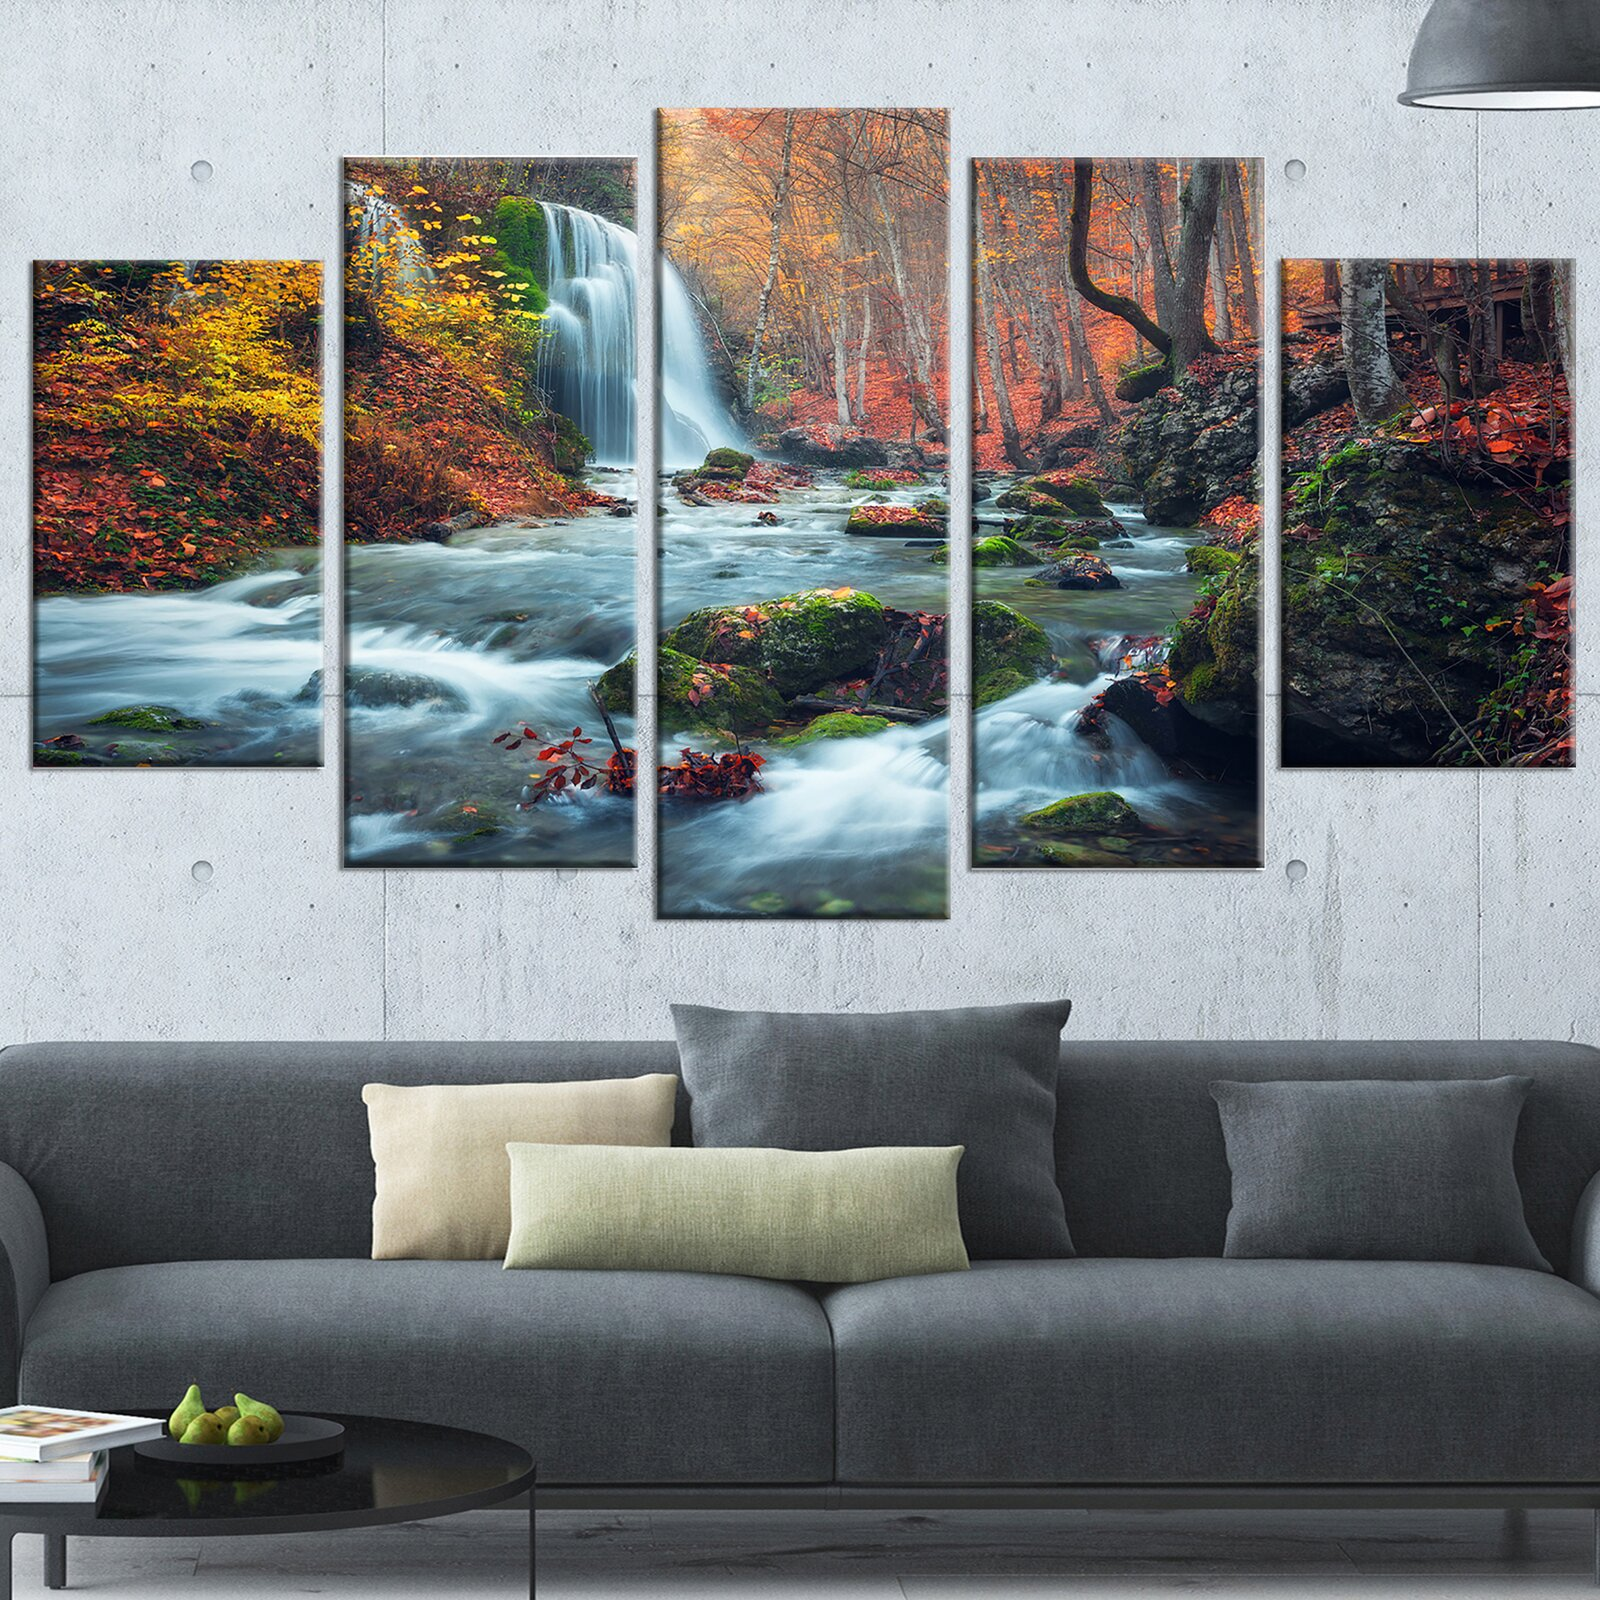 Autumn Mountain Waterfall Long View 5 Piece Wrapped Canvas